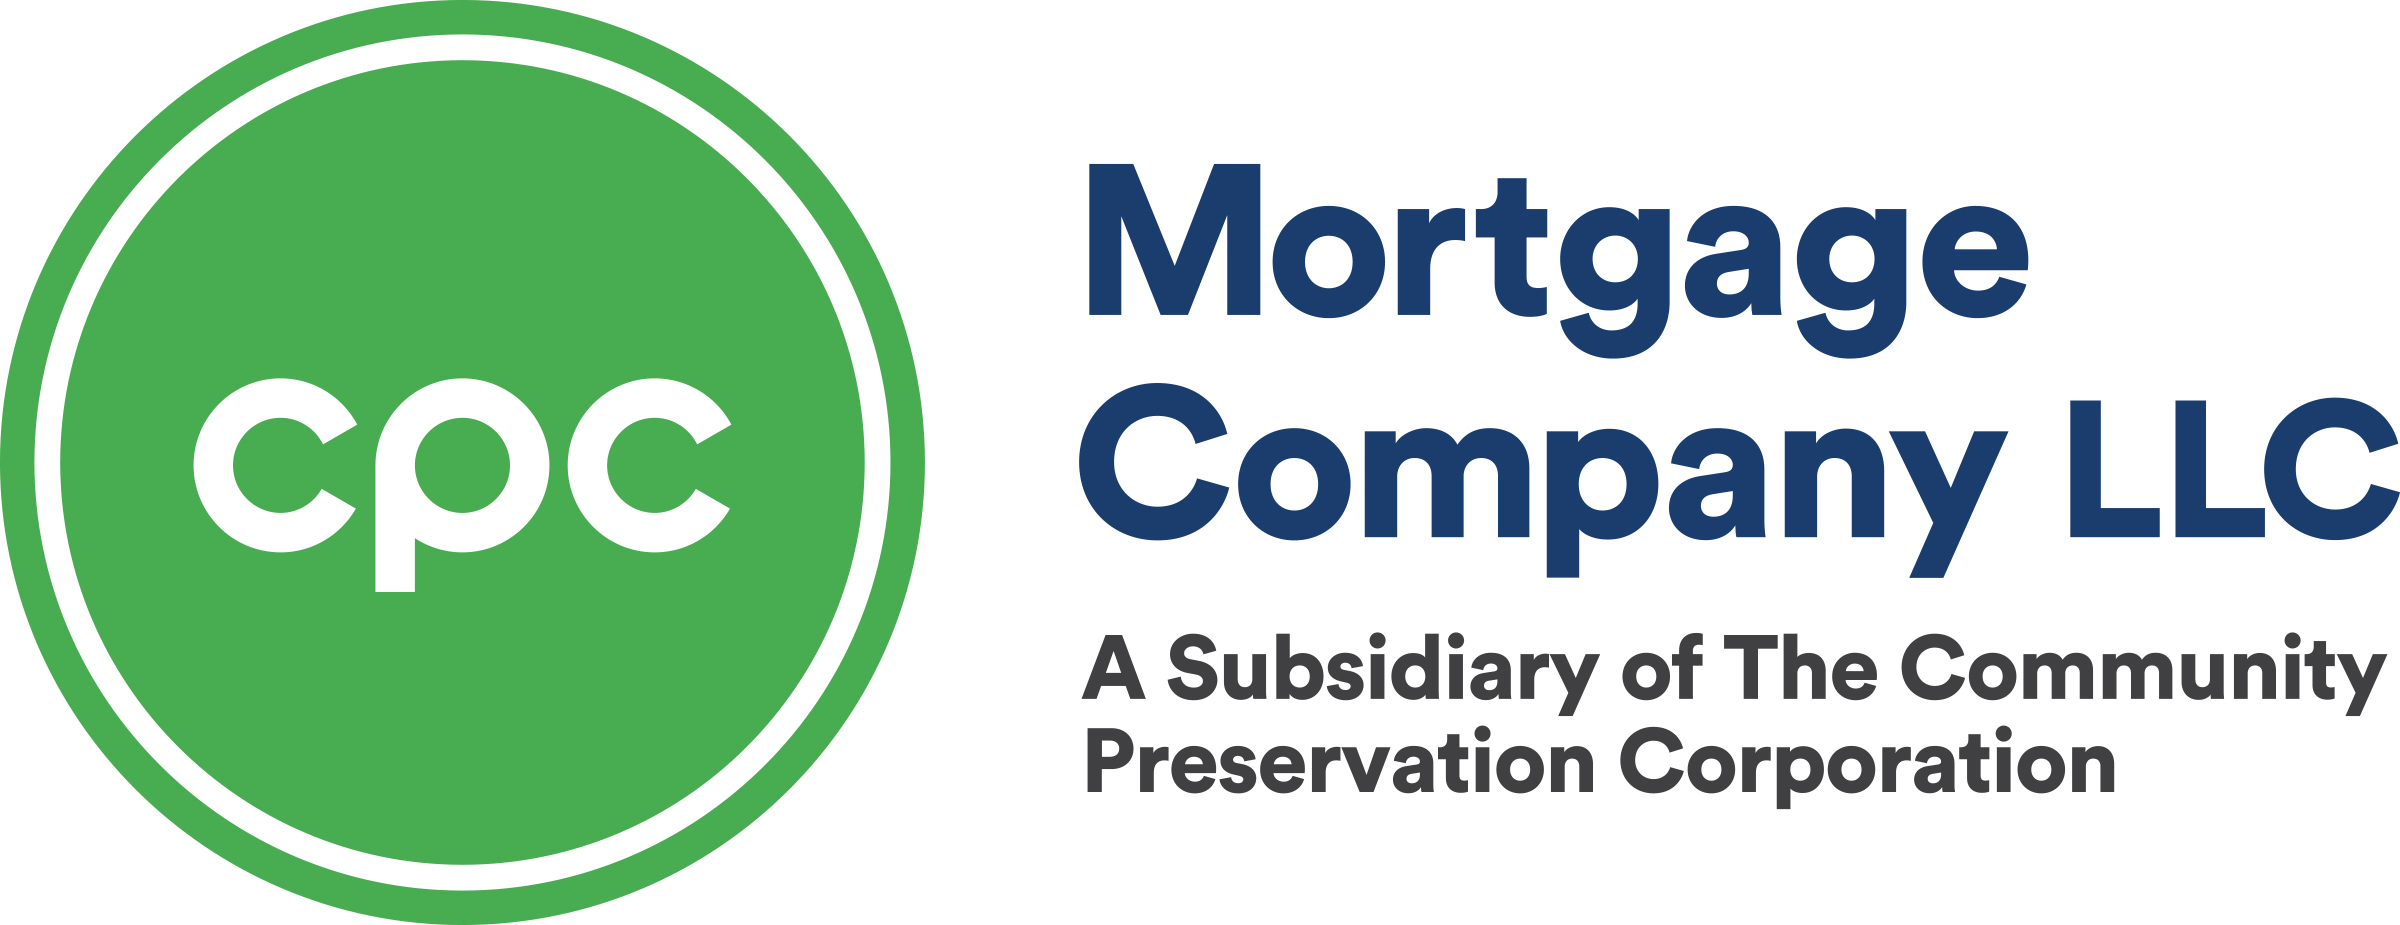 Community Preservation Corporation Mortgage logo